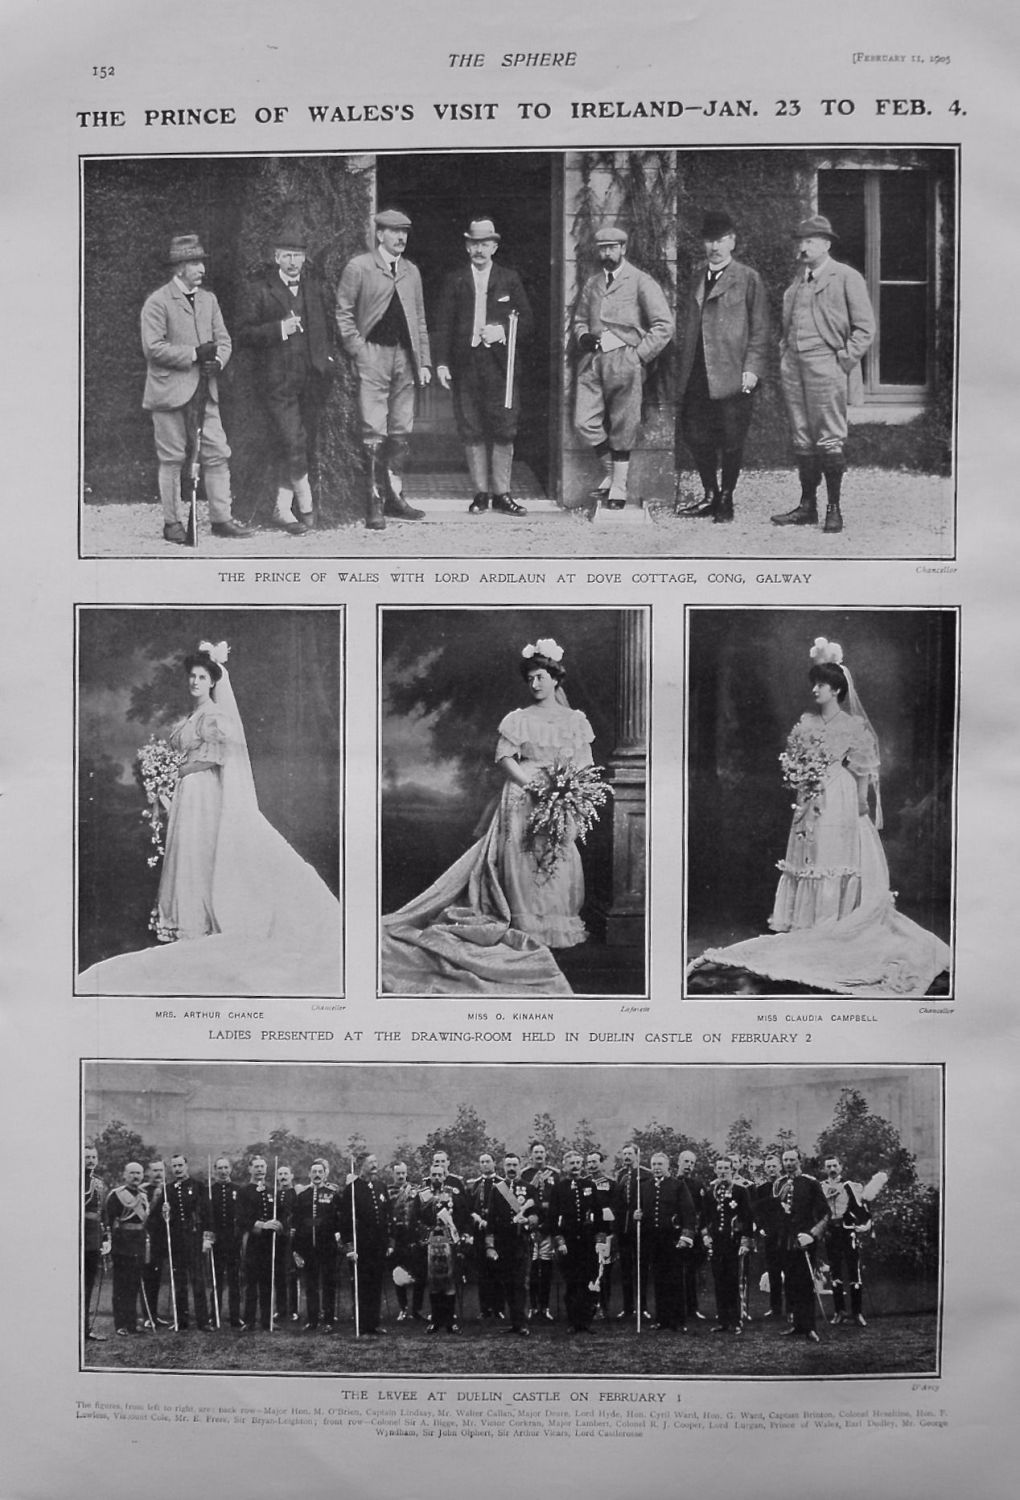 Prince of Wales's Visit To Ireland -Jan. 23 to Feb. 4. 1905.